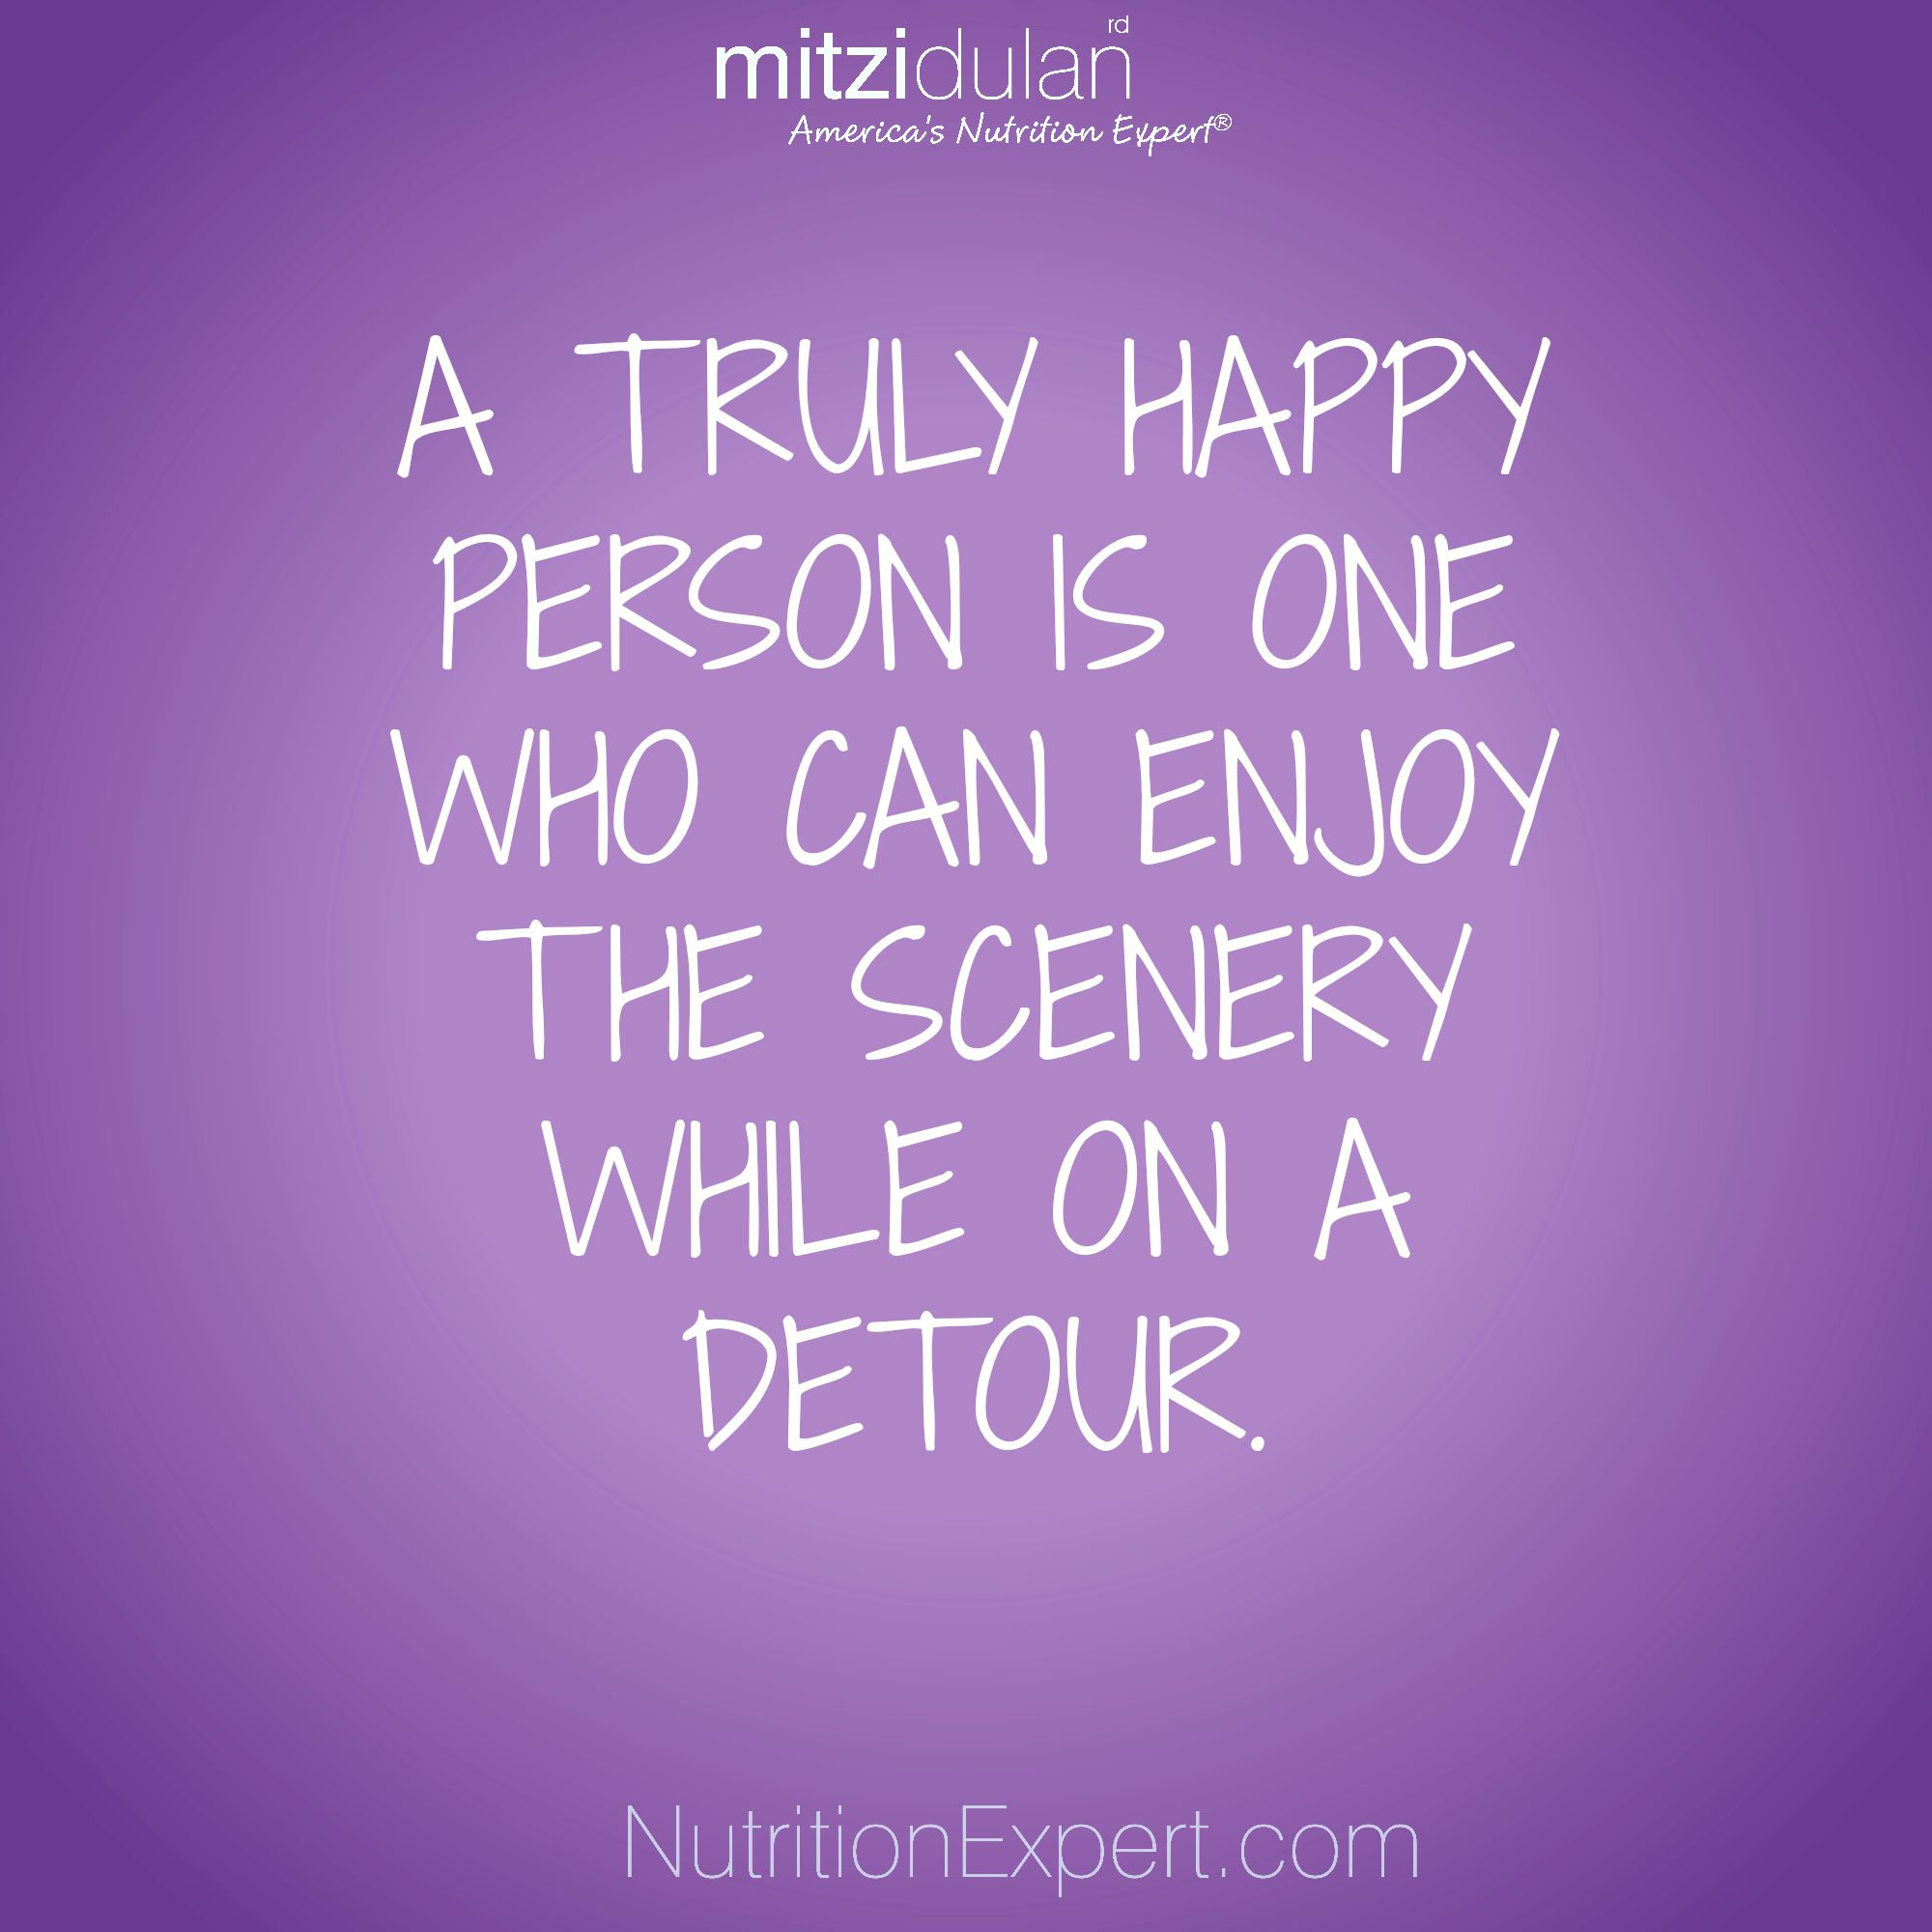 Quotes About Happy Person A Truly Happy Person Is One Who Can Enjoy The Scenery While On A